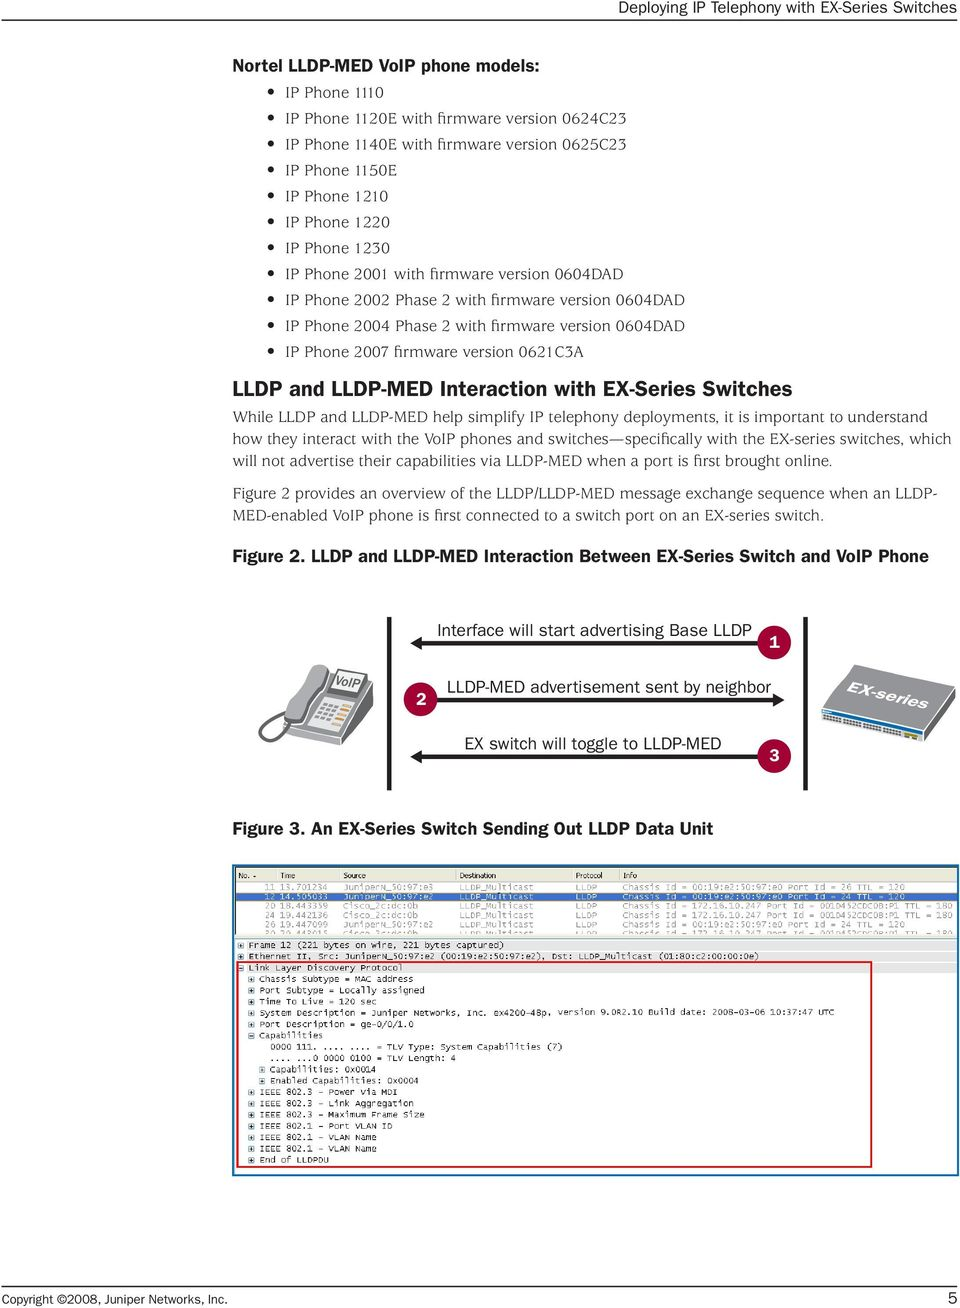 LLDP-MED Interaction with EX-Series Switches While LLDP and LLDP-MED help simplify IP telephony deployments, it is important to understand how they interact with the VoIP phones and switches